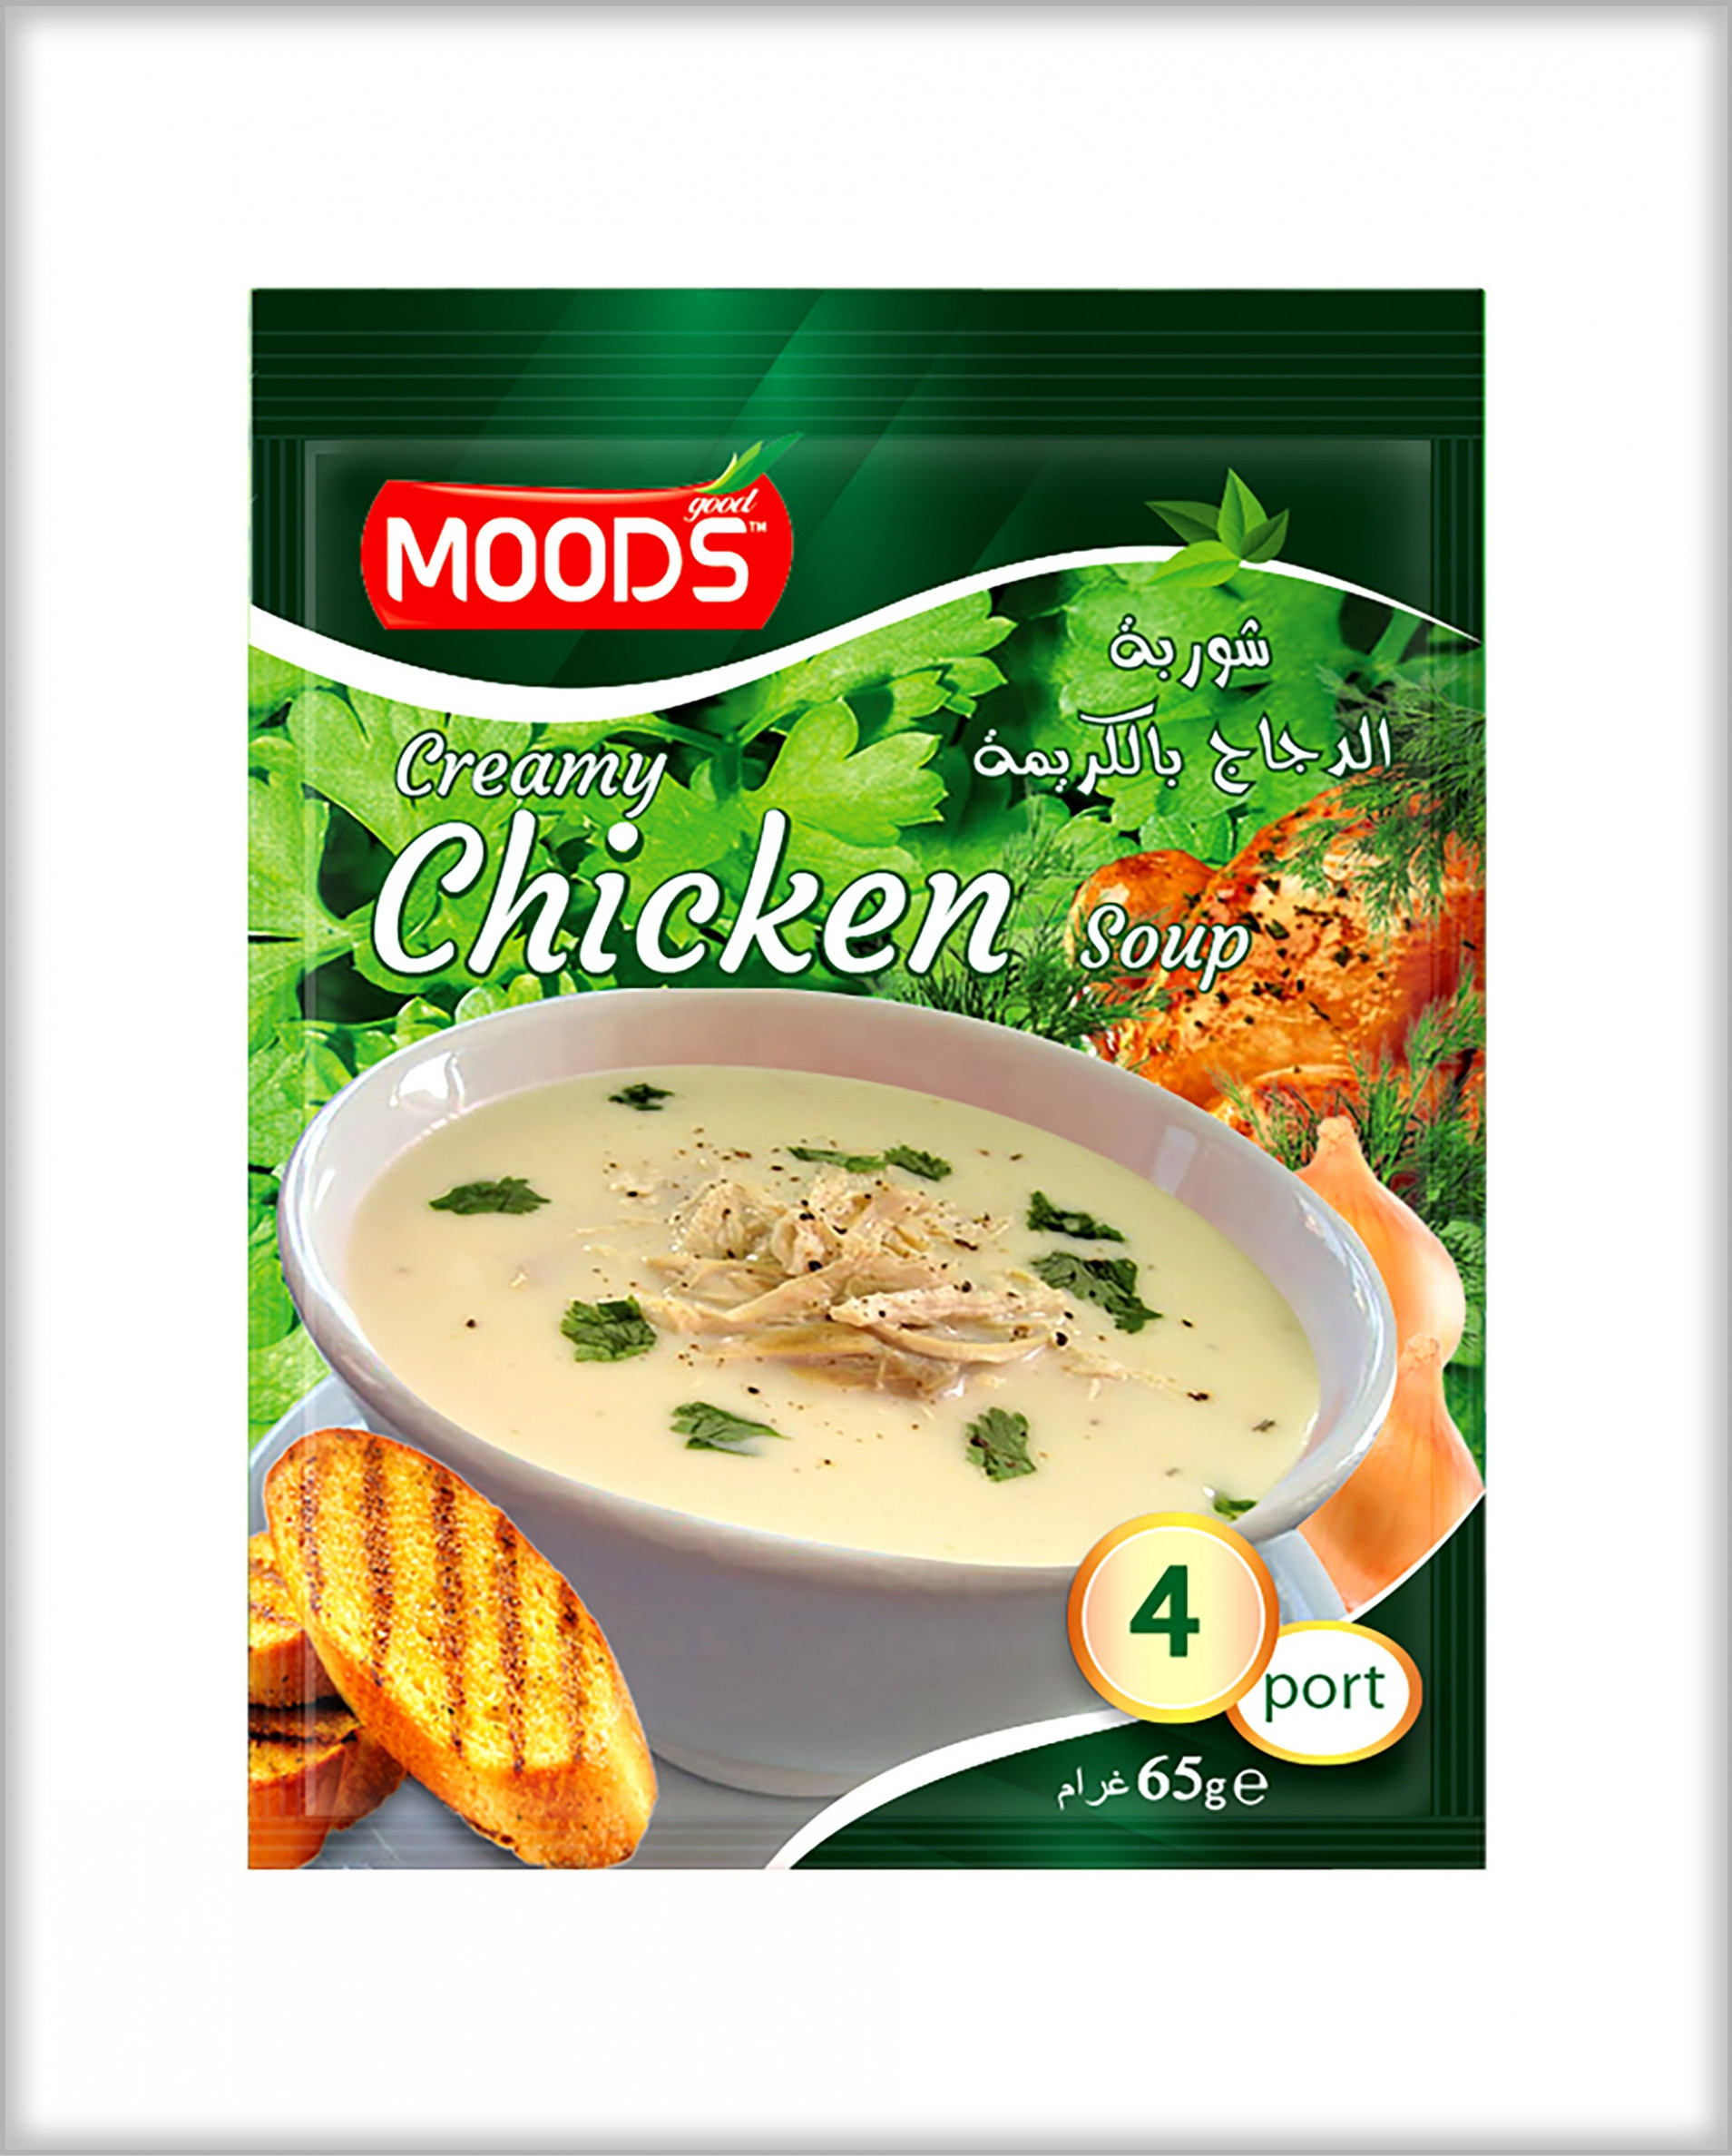 CREAMY CHICKEN SOUP 13G | Sollievo Foods - recipes that use cream of chicken soup